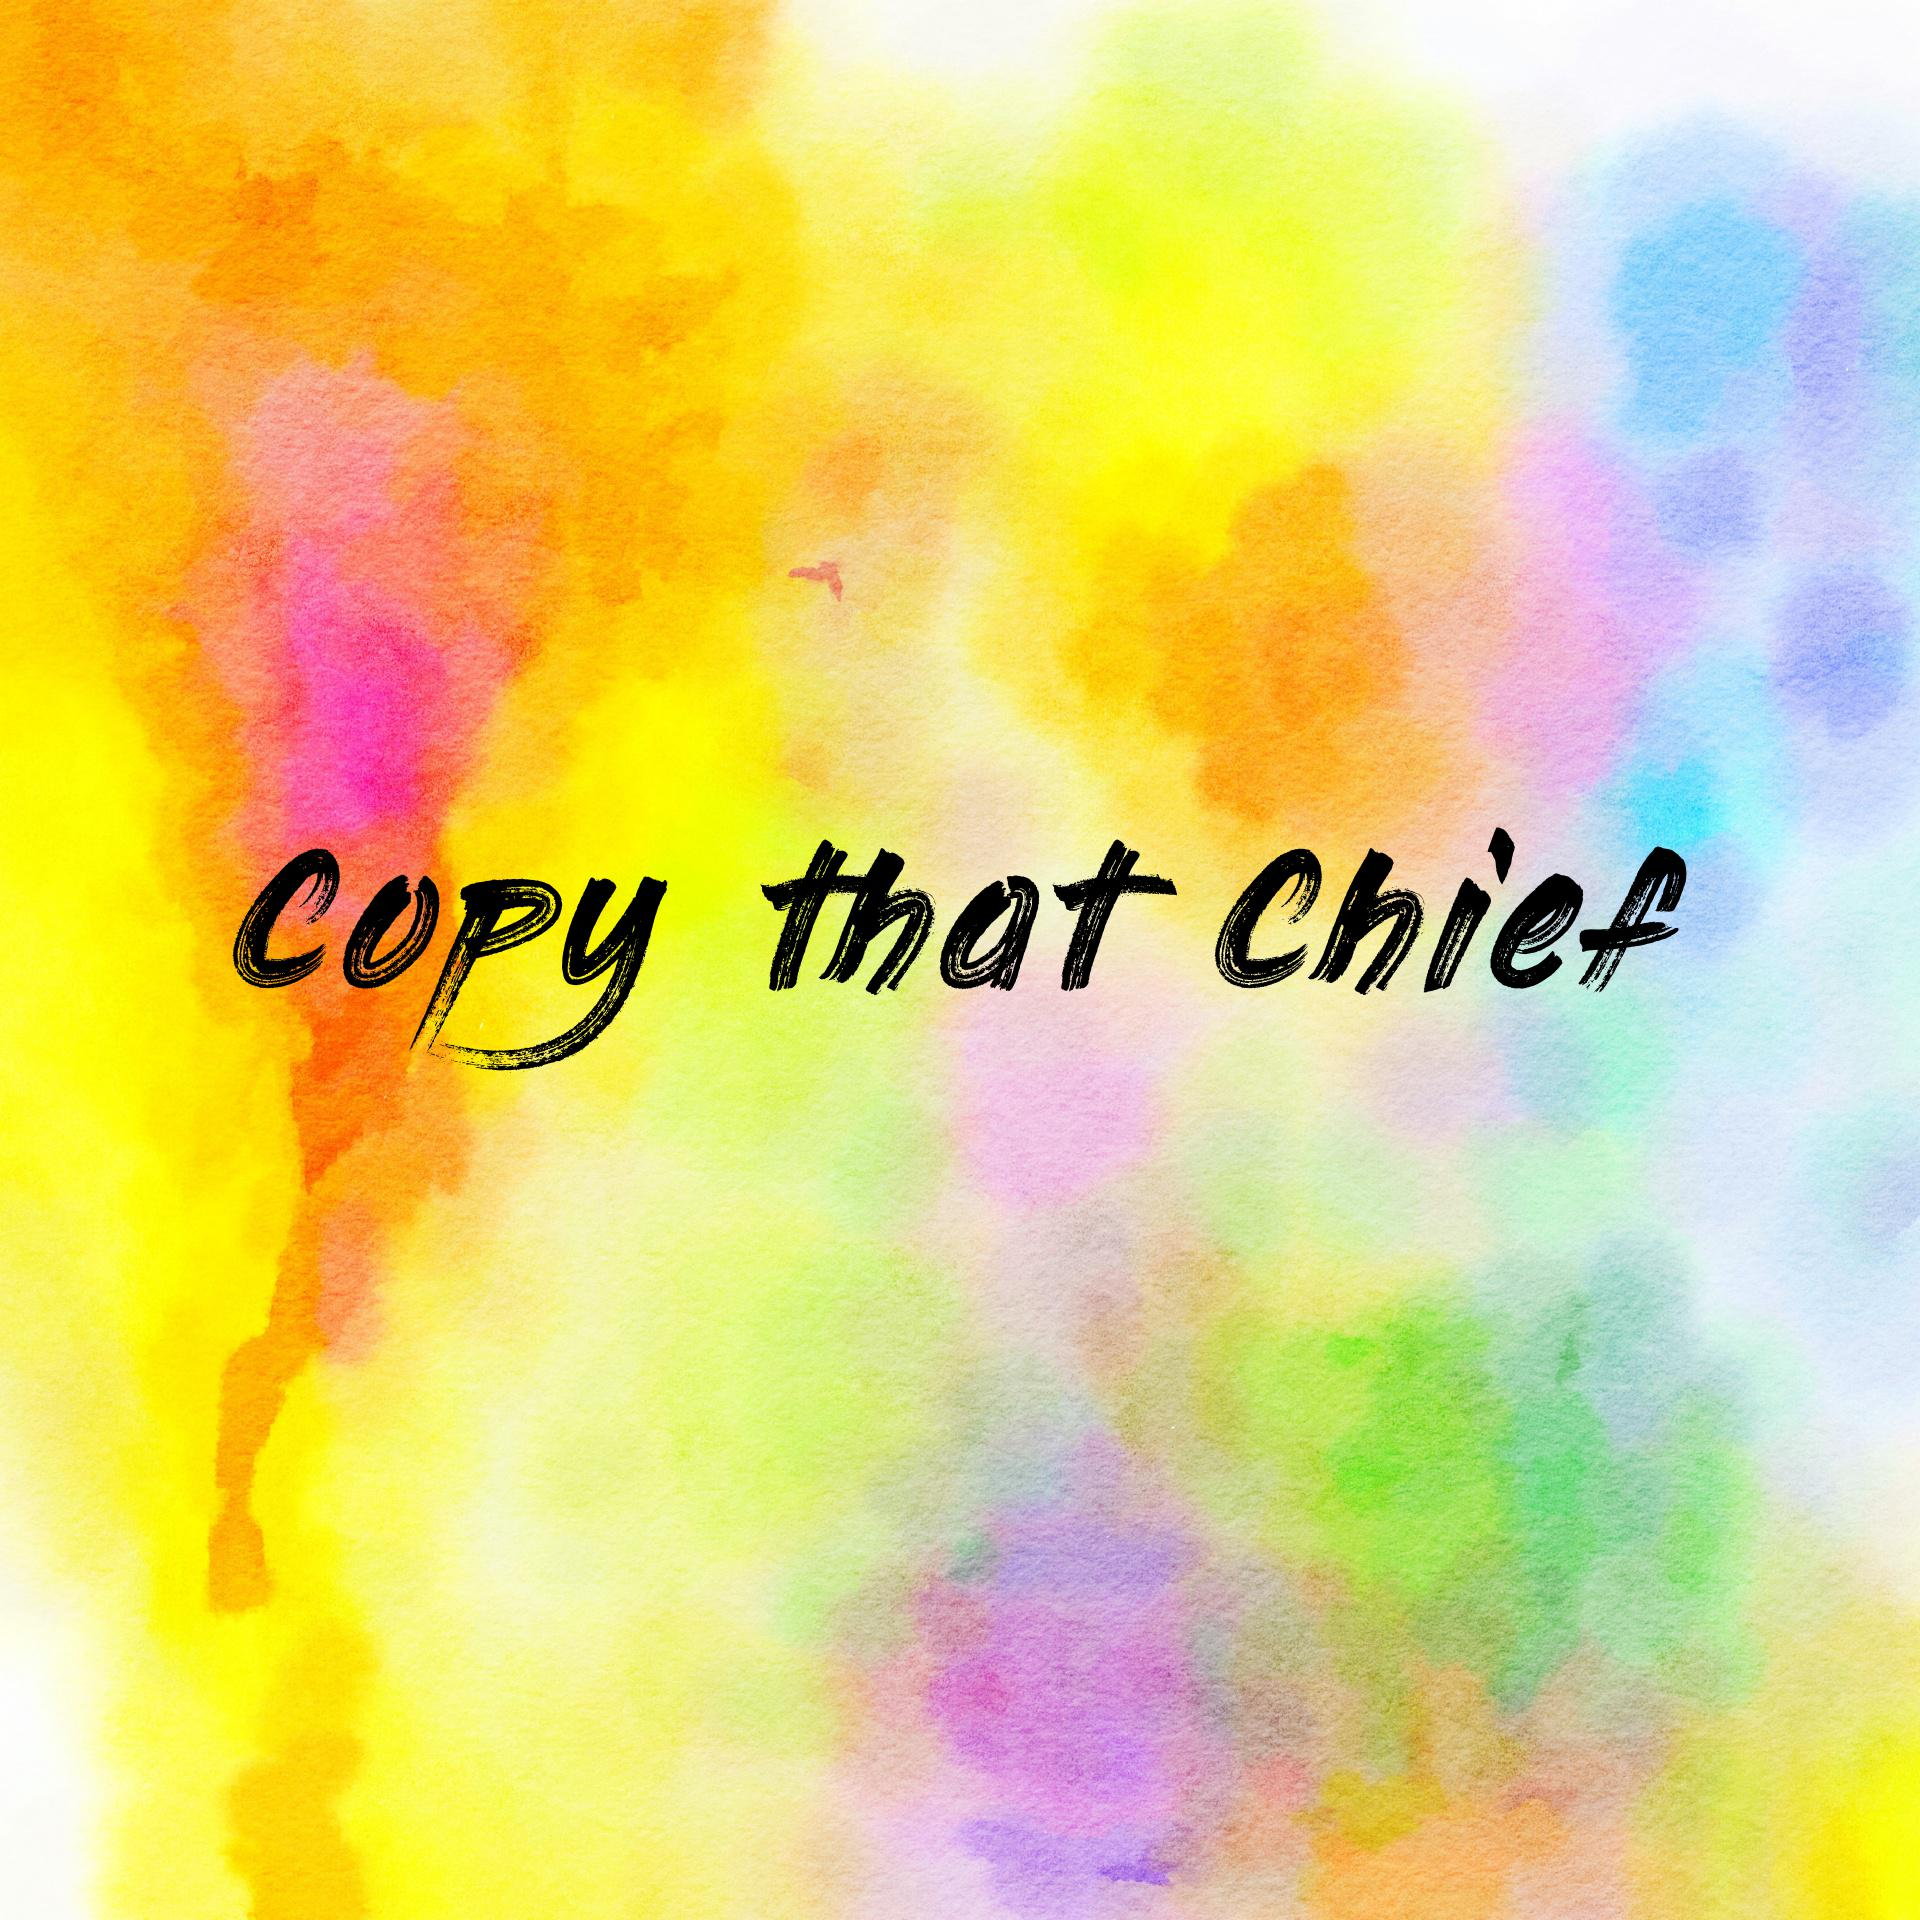 Copy that Chief